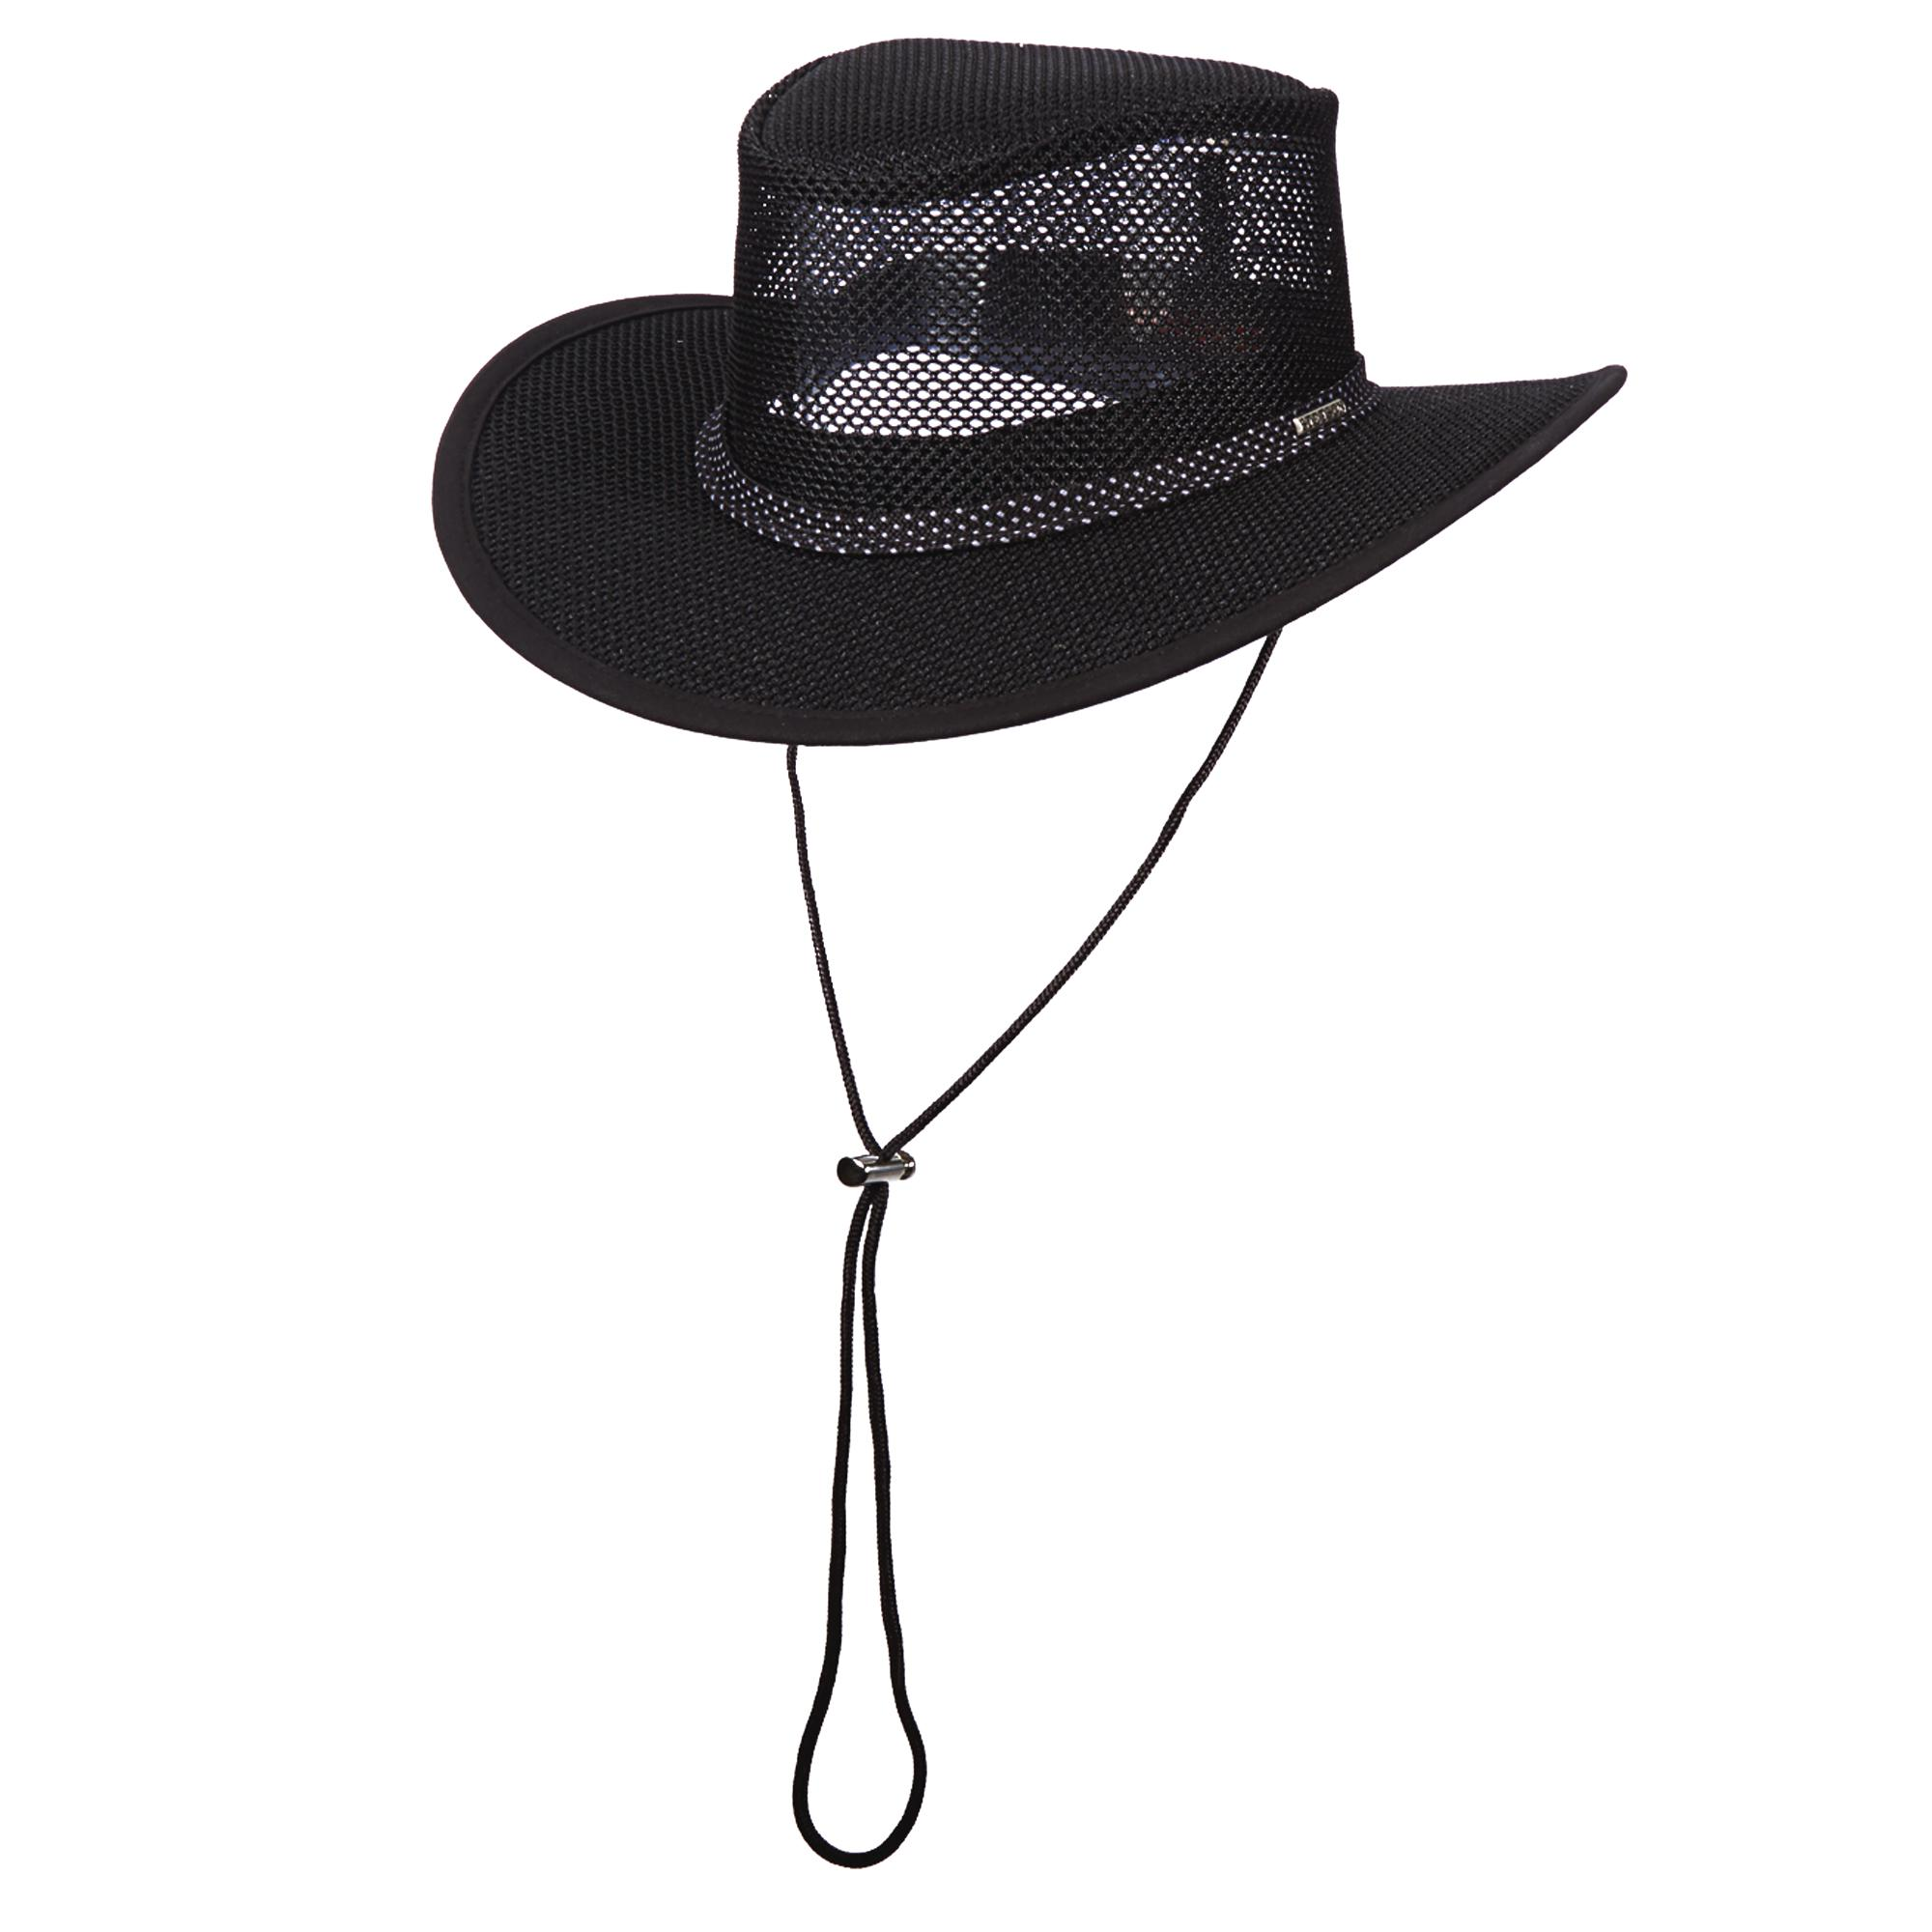 80e259bf2 Stetson Men's Hats and Caps | MenStyle USA